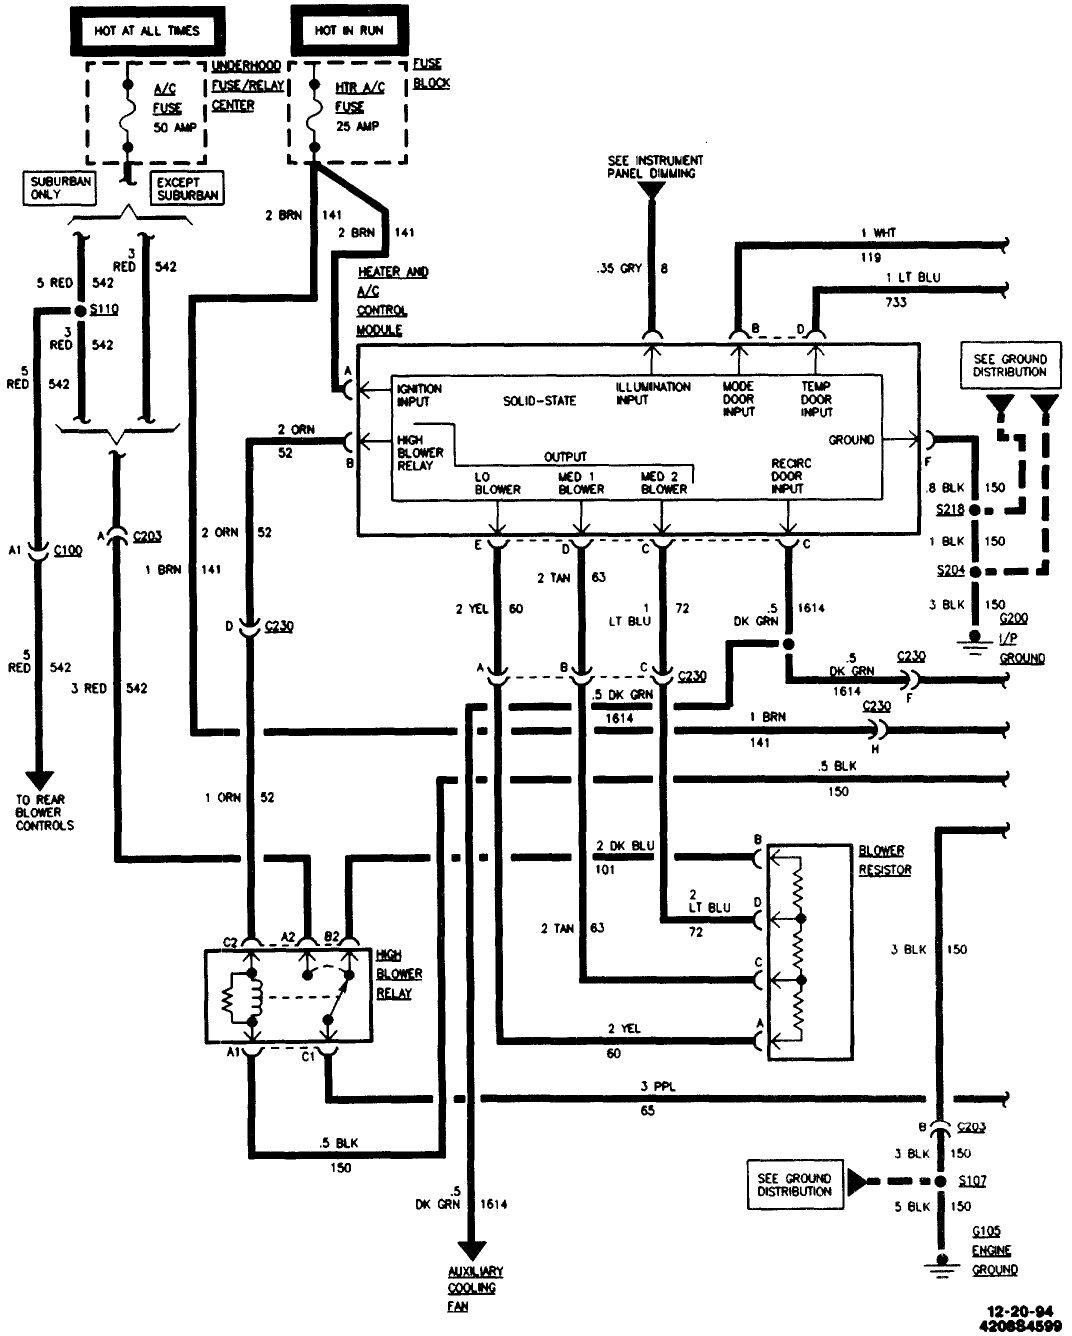 Diagram Wiring Diagram 95 Chevy Truck Full Version Hd Quality Chevy Truck Diagramringi Arborealive It